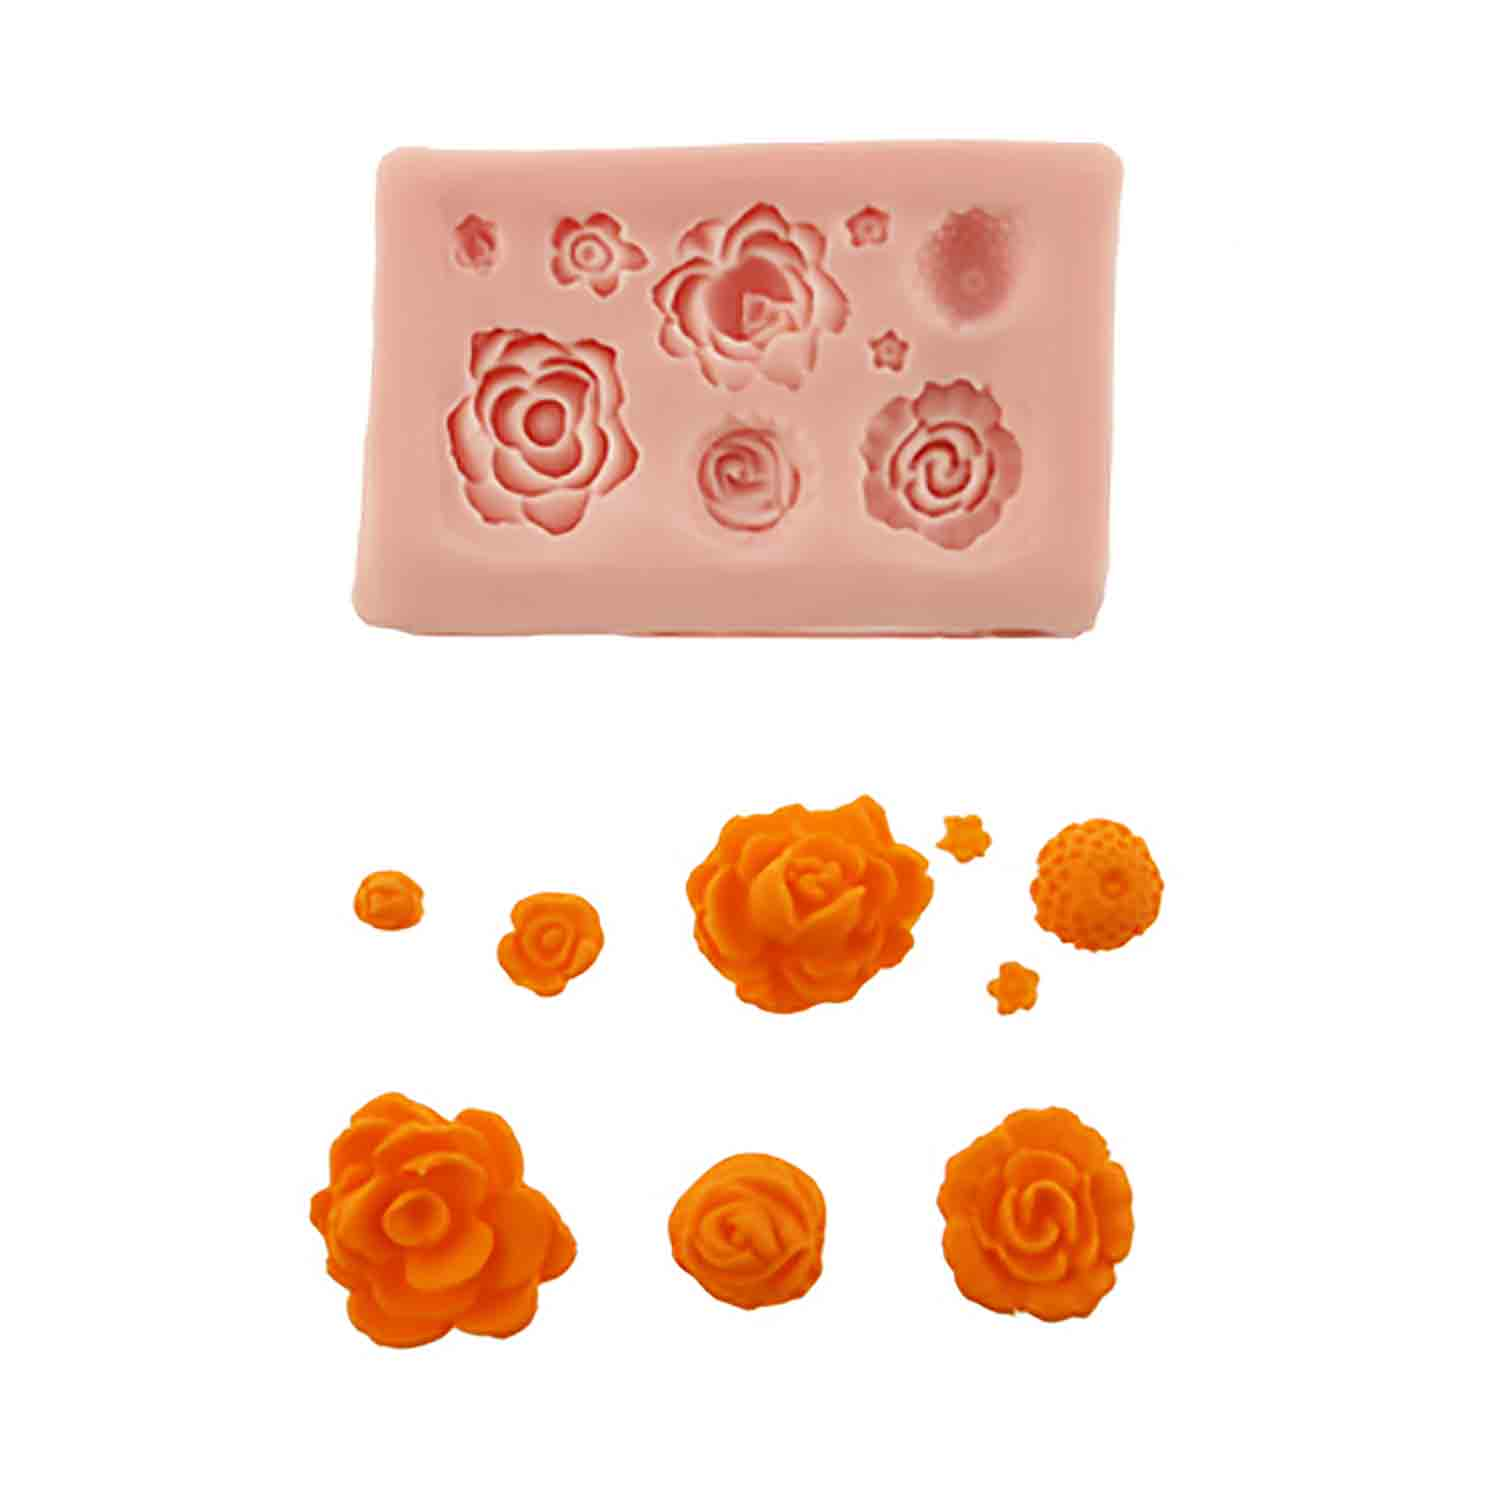 More Roses Silicone Mold